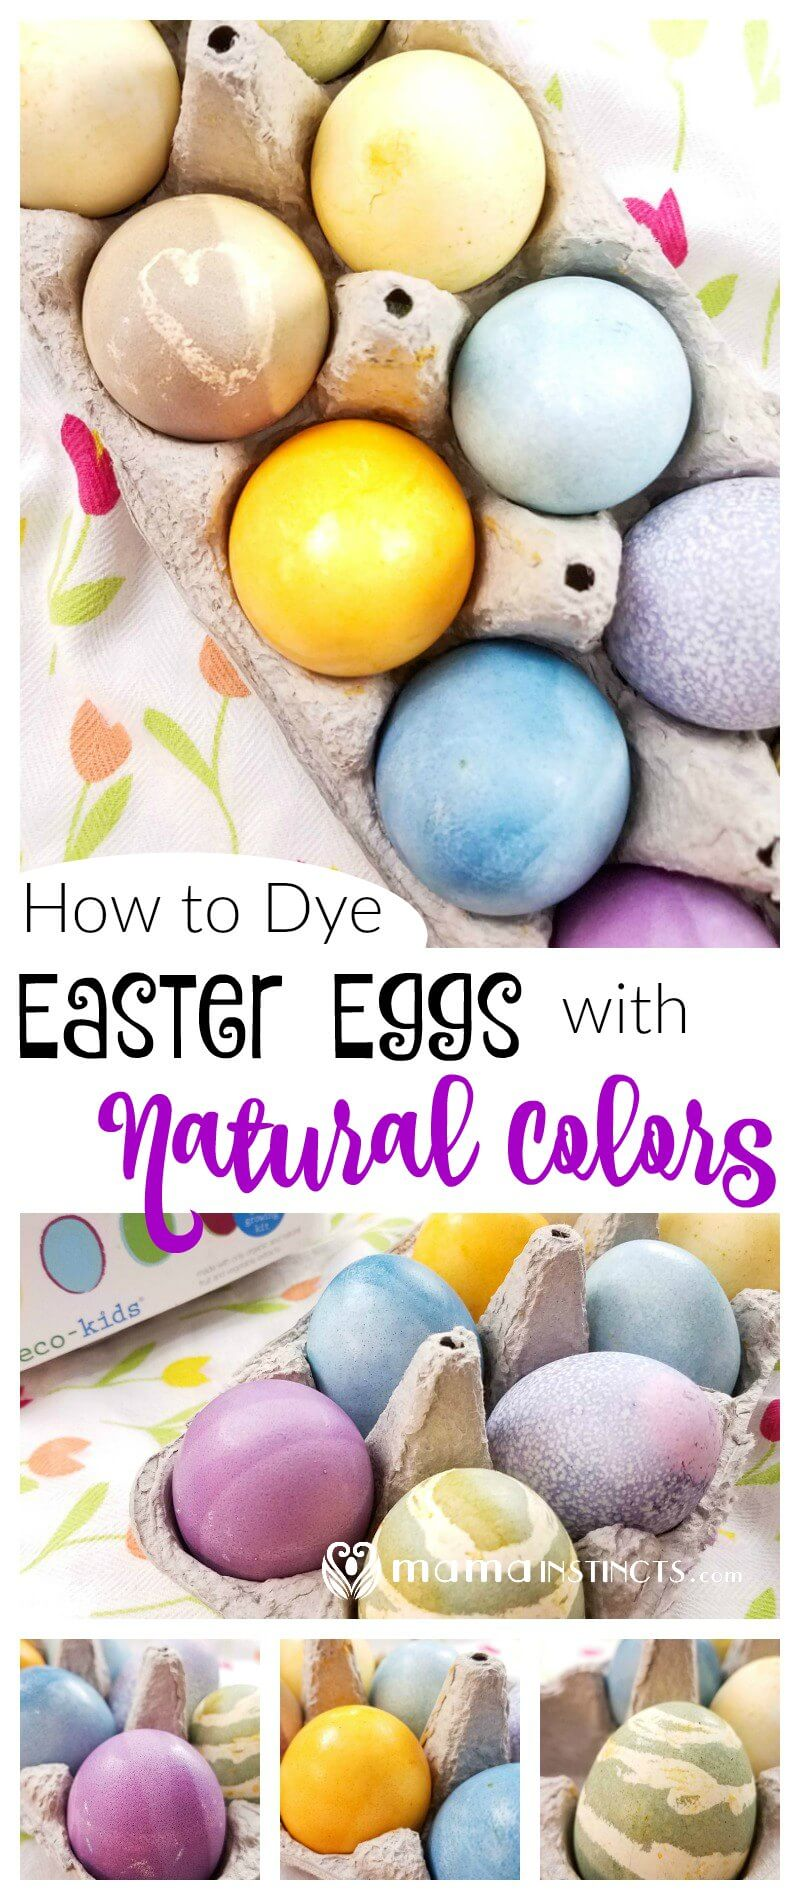 how to get easter egg dye off skin